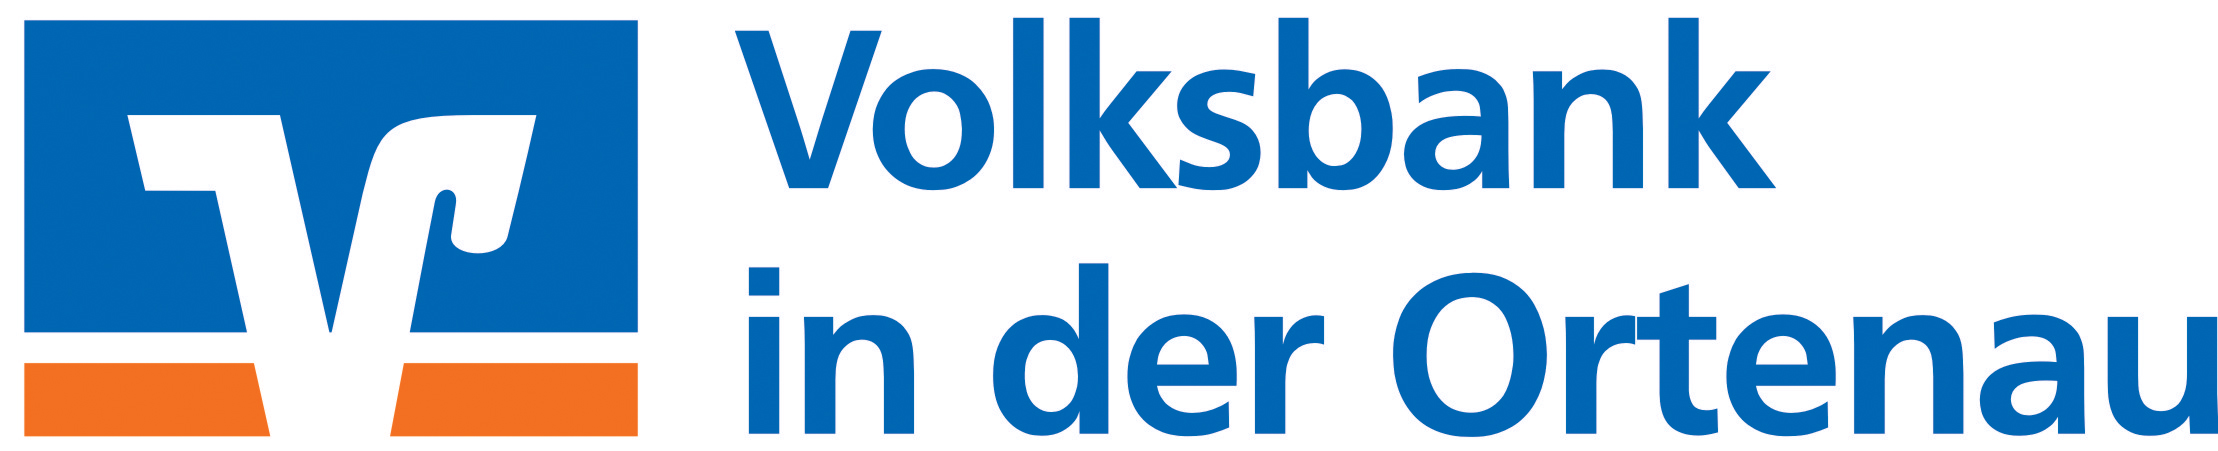 Credit Logo_Volksbank-in-der-Ortenau